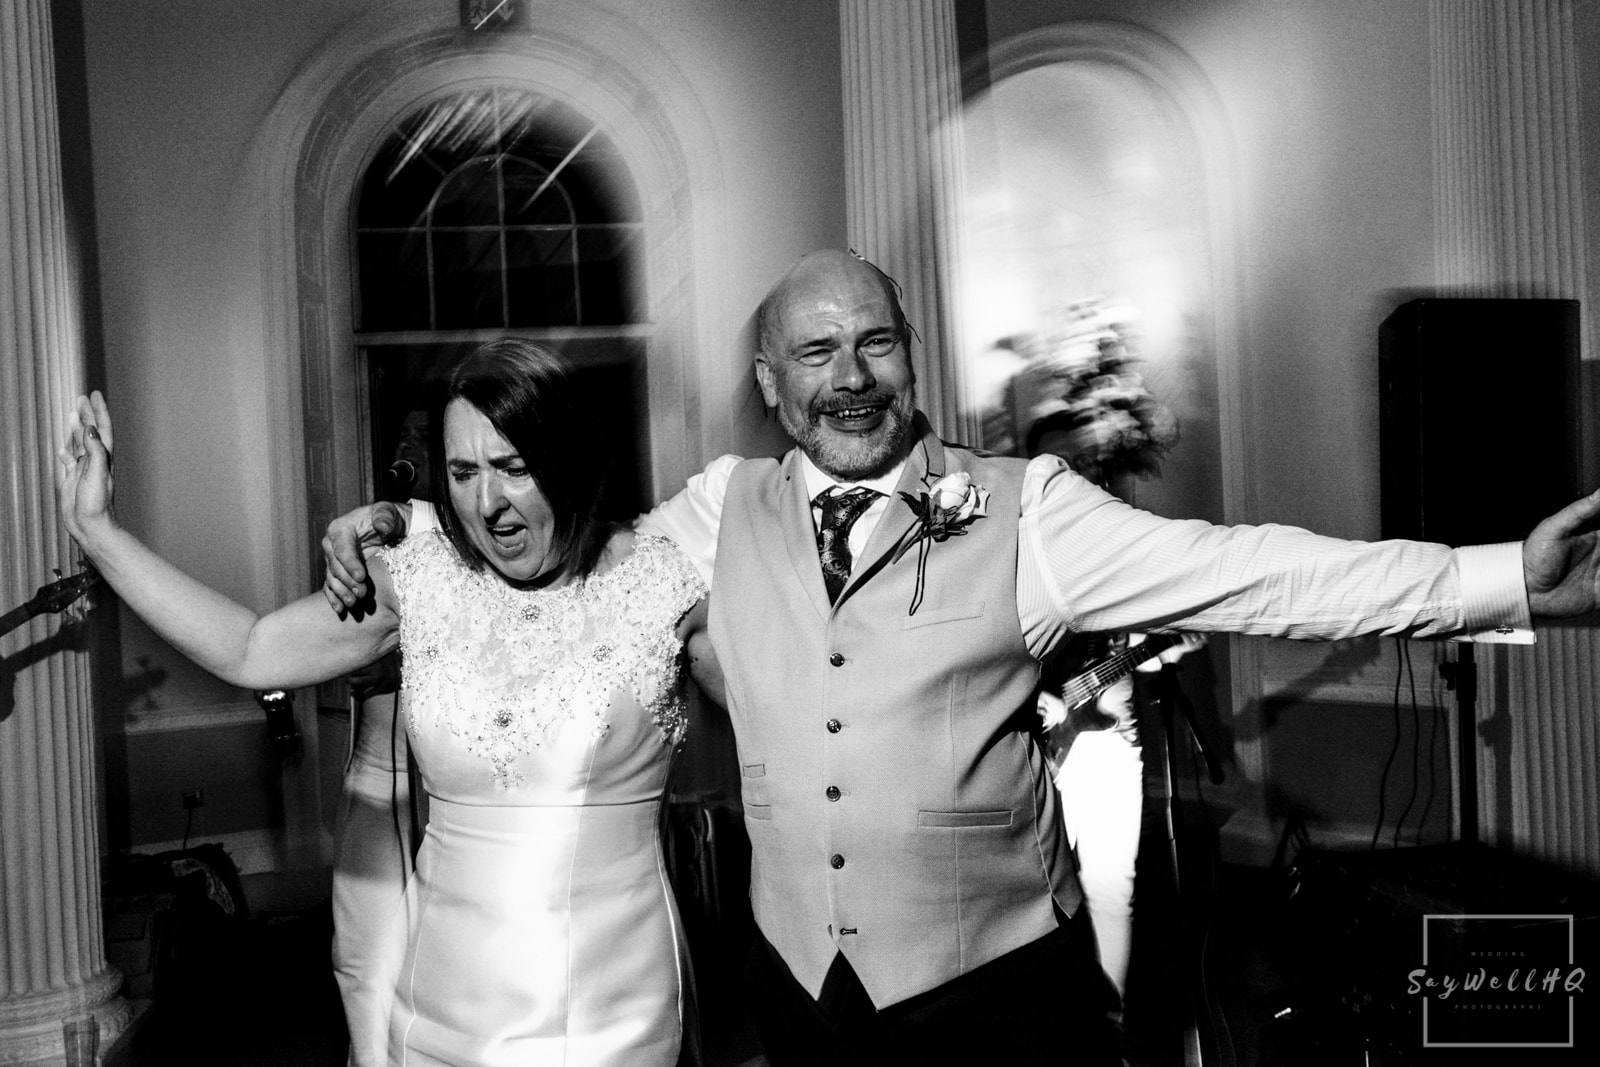 Colwick Hall Wedding Photography + Colwick Hall Wedding Photographer + bride and groom dance during the 80's live band playing live music on their wedding day